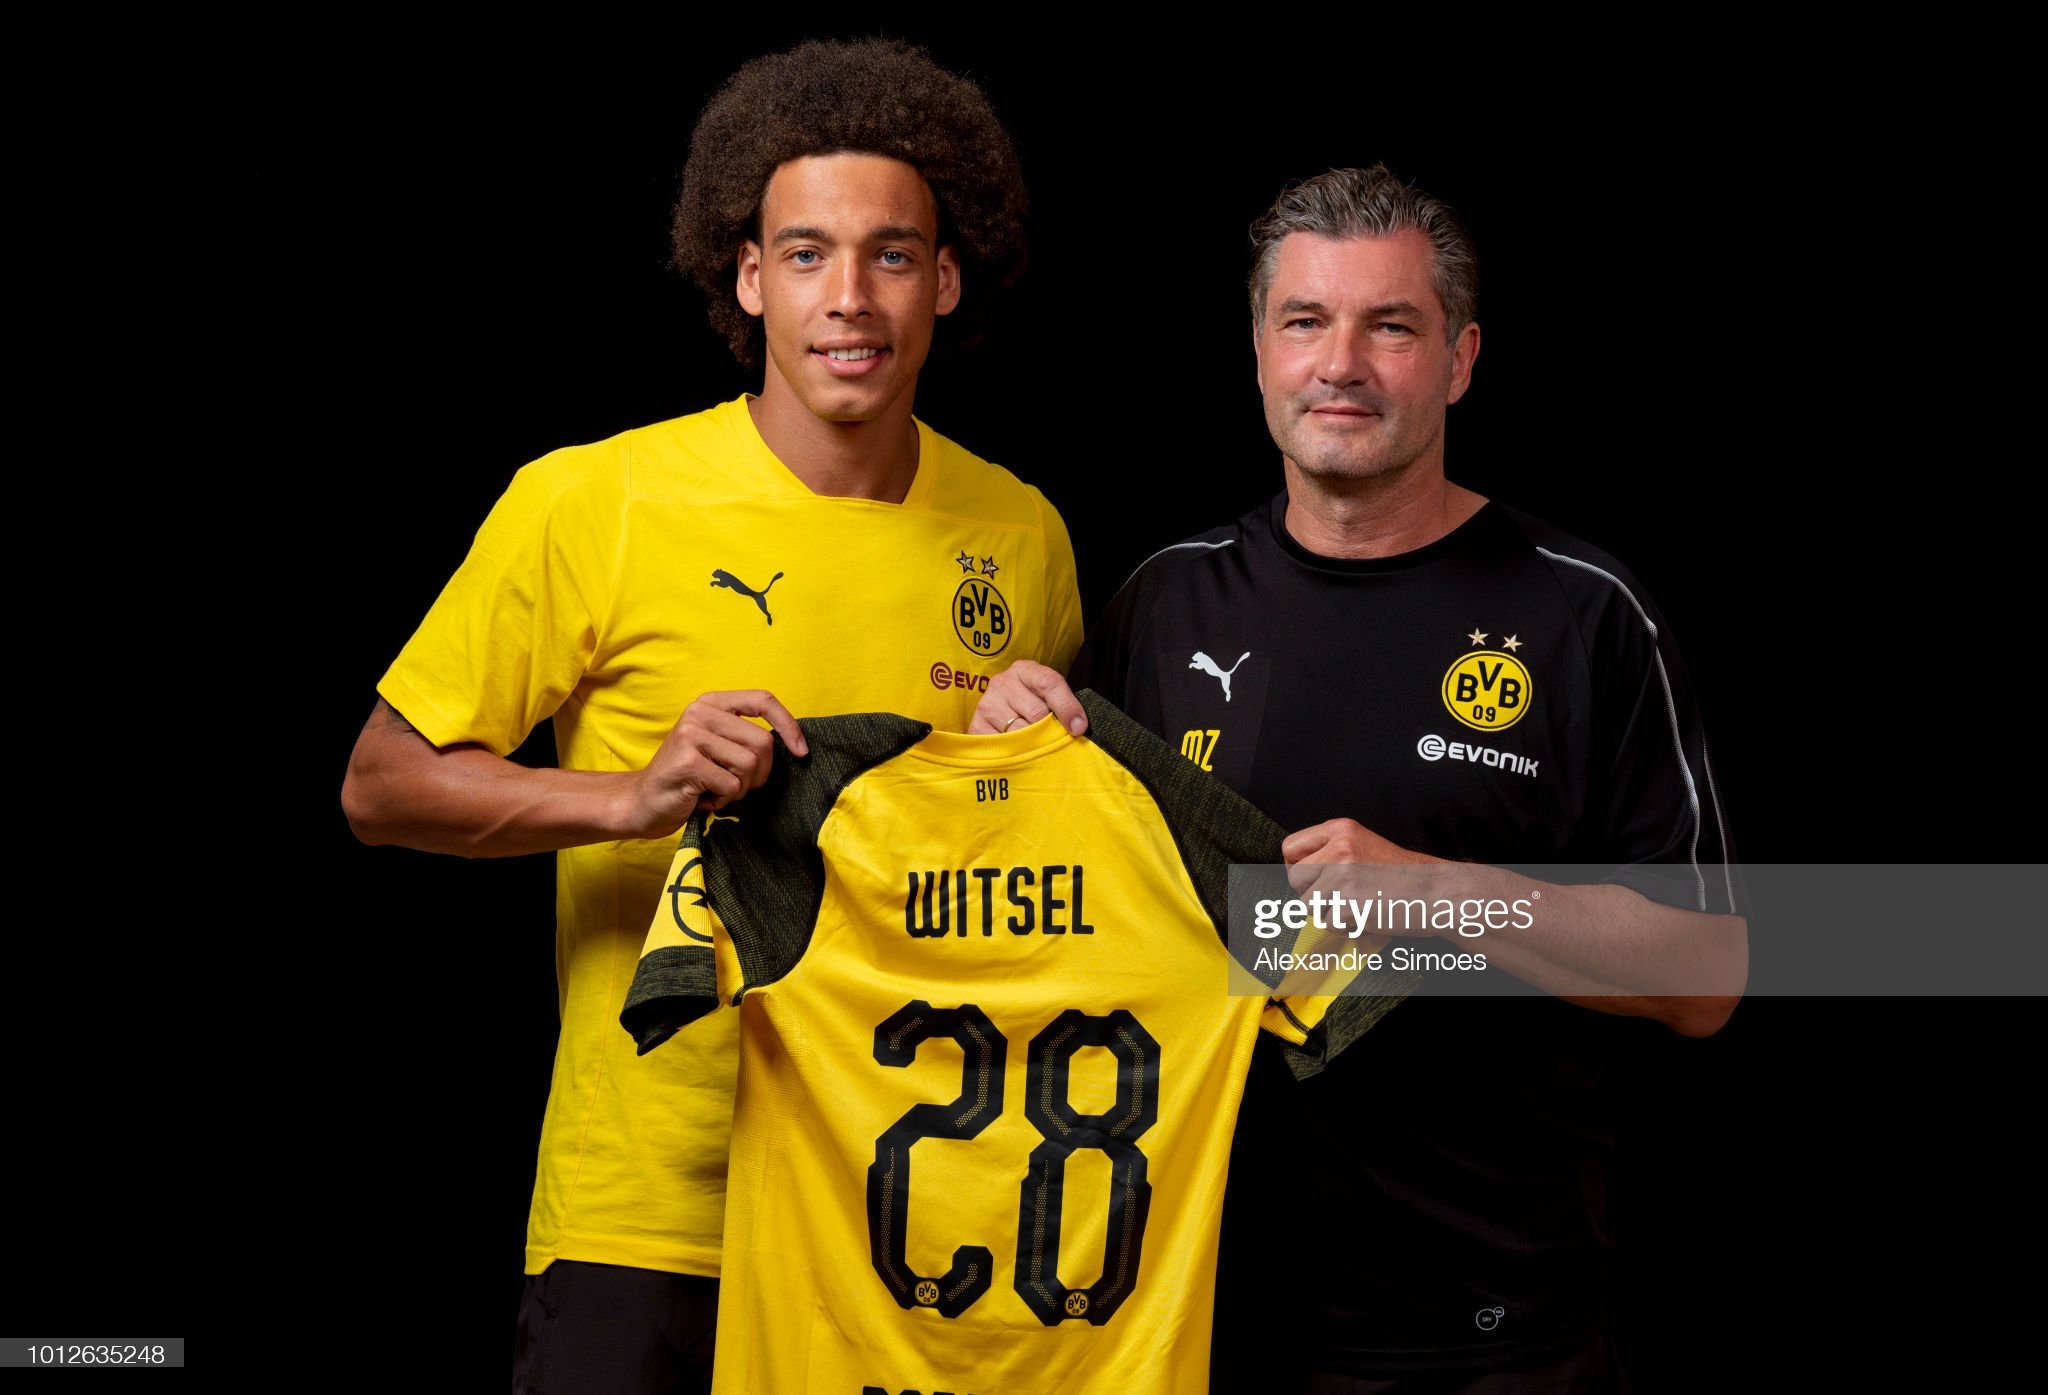 ¿Cuánto mide Michael Zorc? - Real height New-signing-axel-witsel-of-borussia-dortmund-poses-with-michael-zorc-picture-id1012635248?s=2048x2048